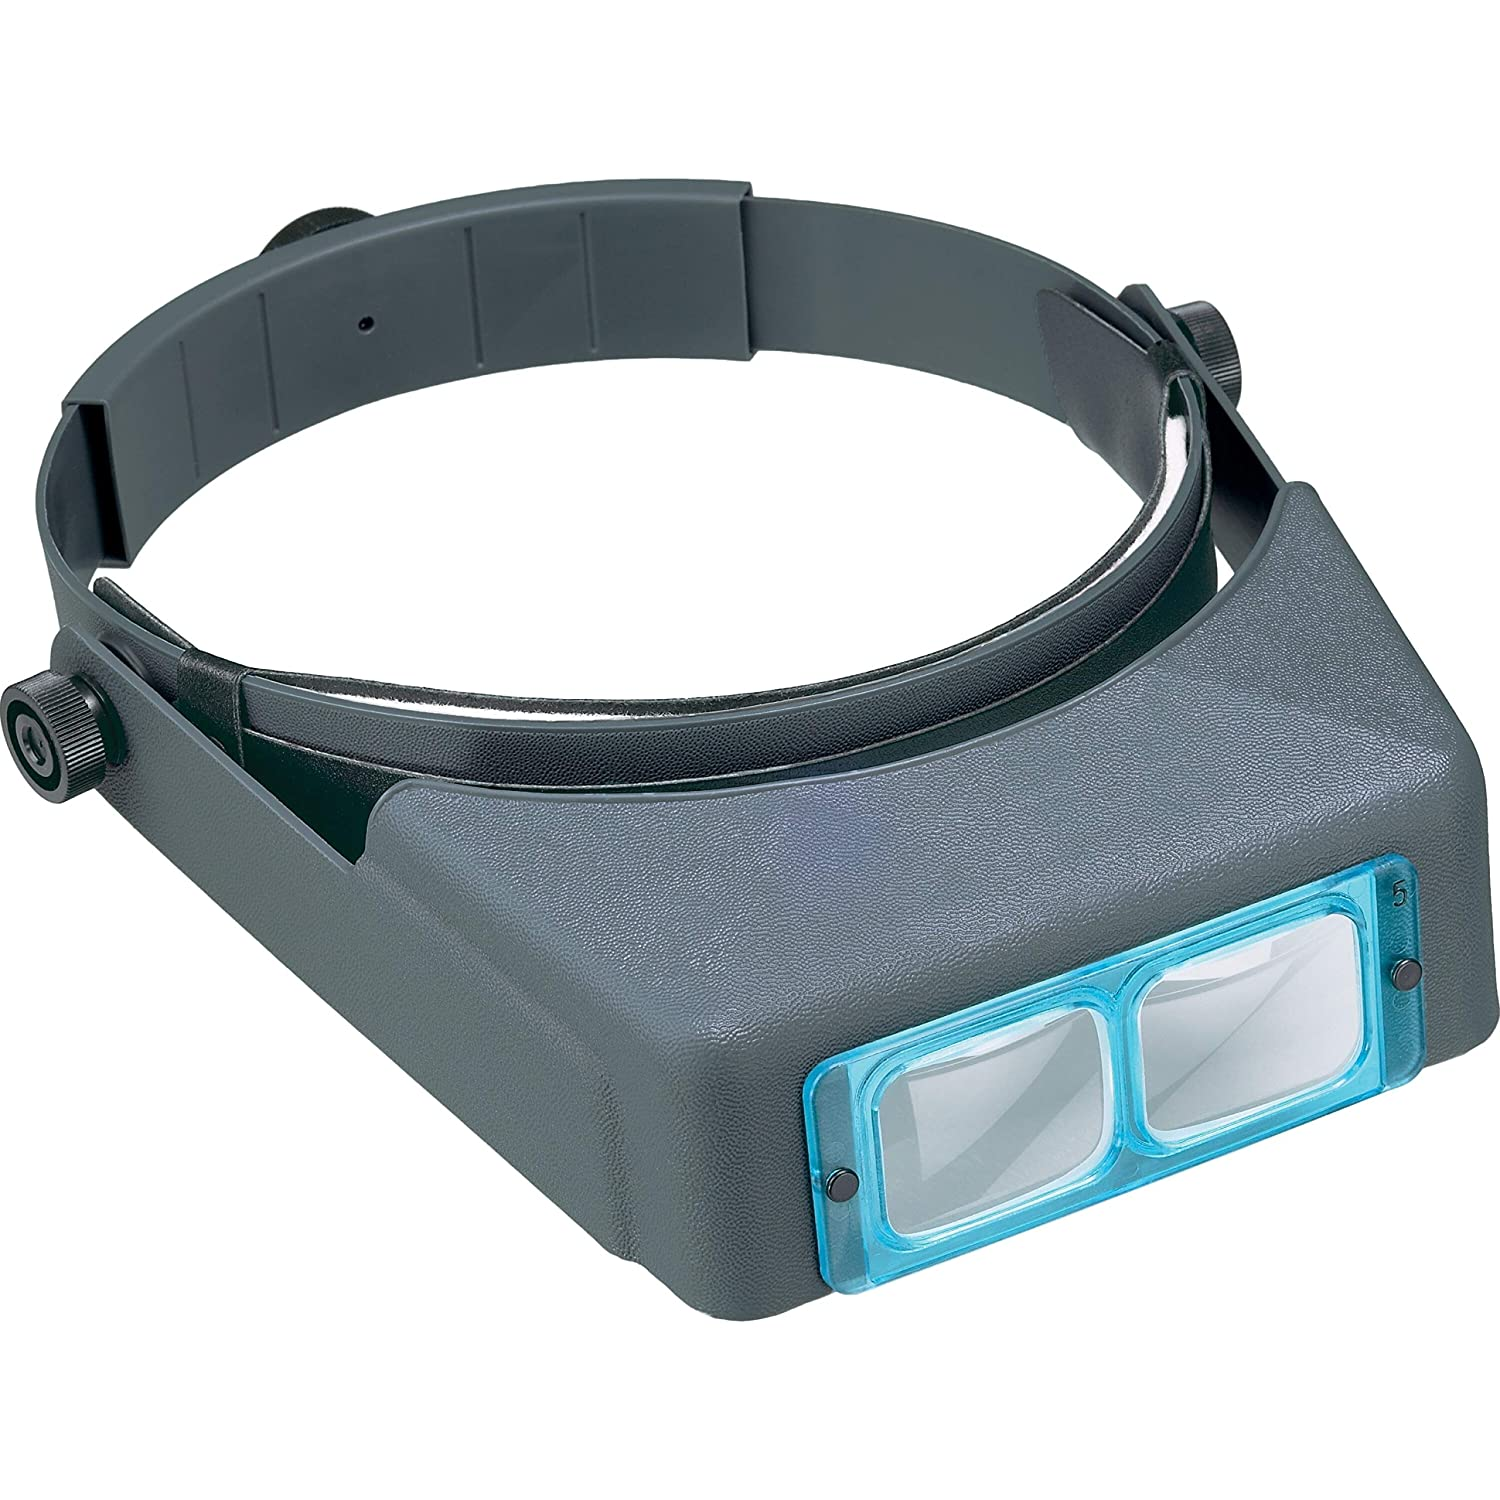 Donegan Optical OPTIVISOR Precision Binocular Headband Magnifier OR Spare Lenses